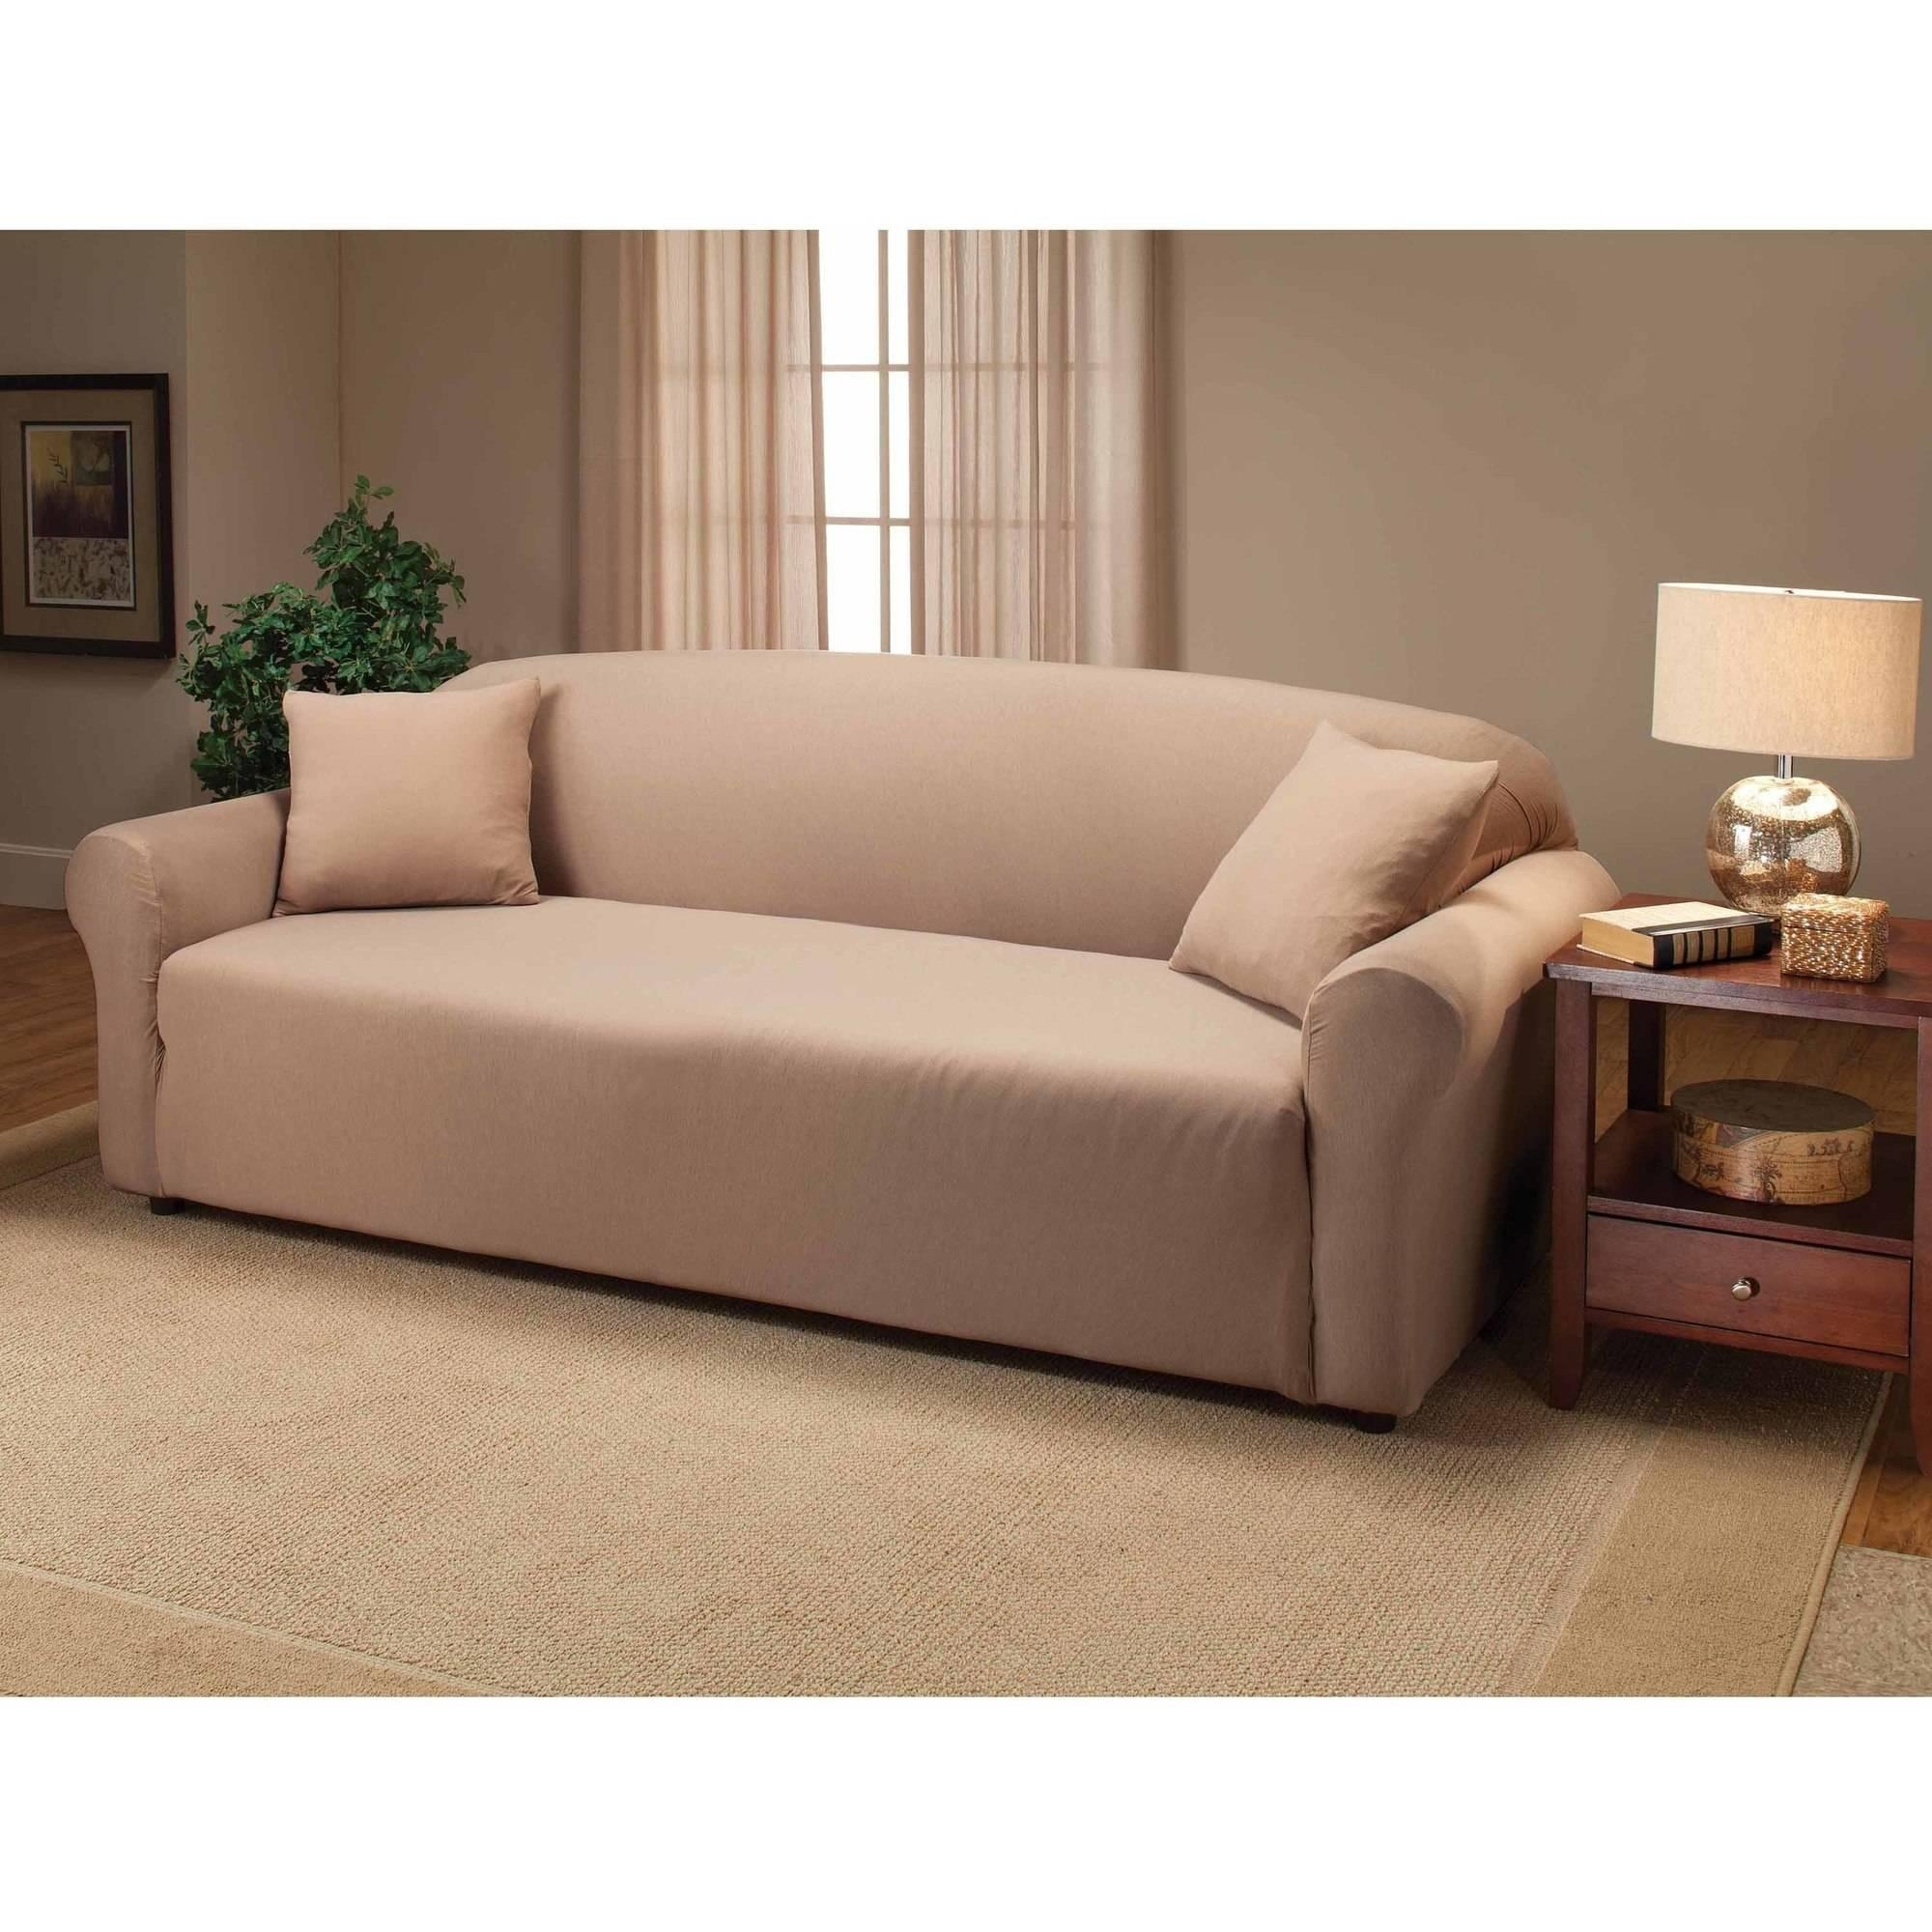 Furniture: Couch Covers At Walmart To Make Your Furniture Stylish With Regard To Slipcover For Reclining Sofas (Image 5 of 20)